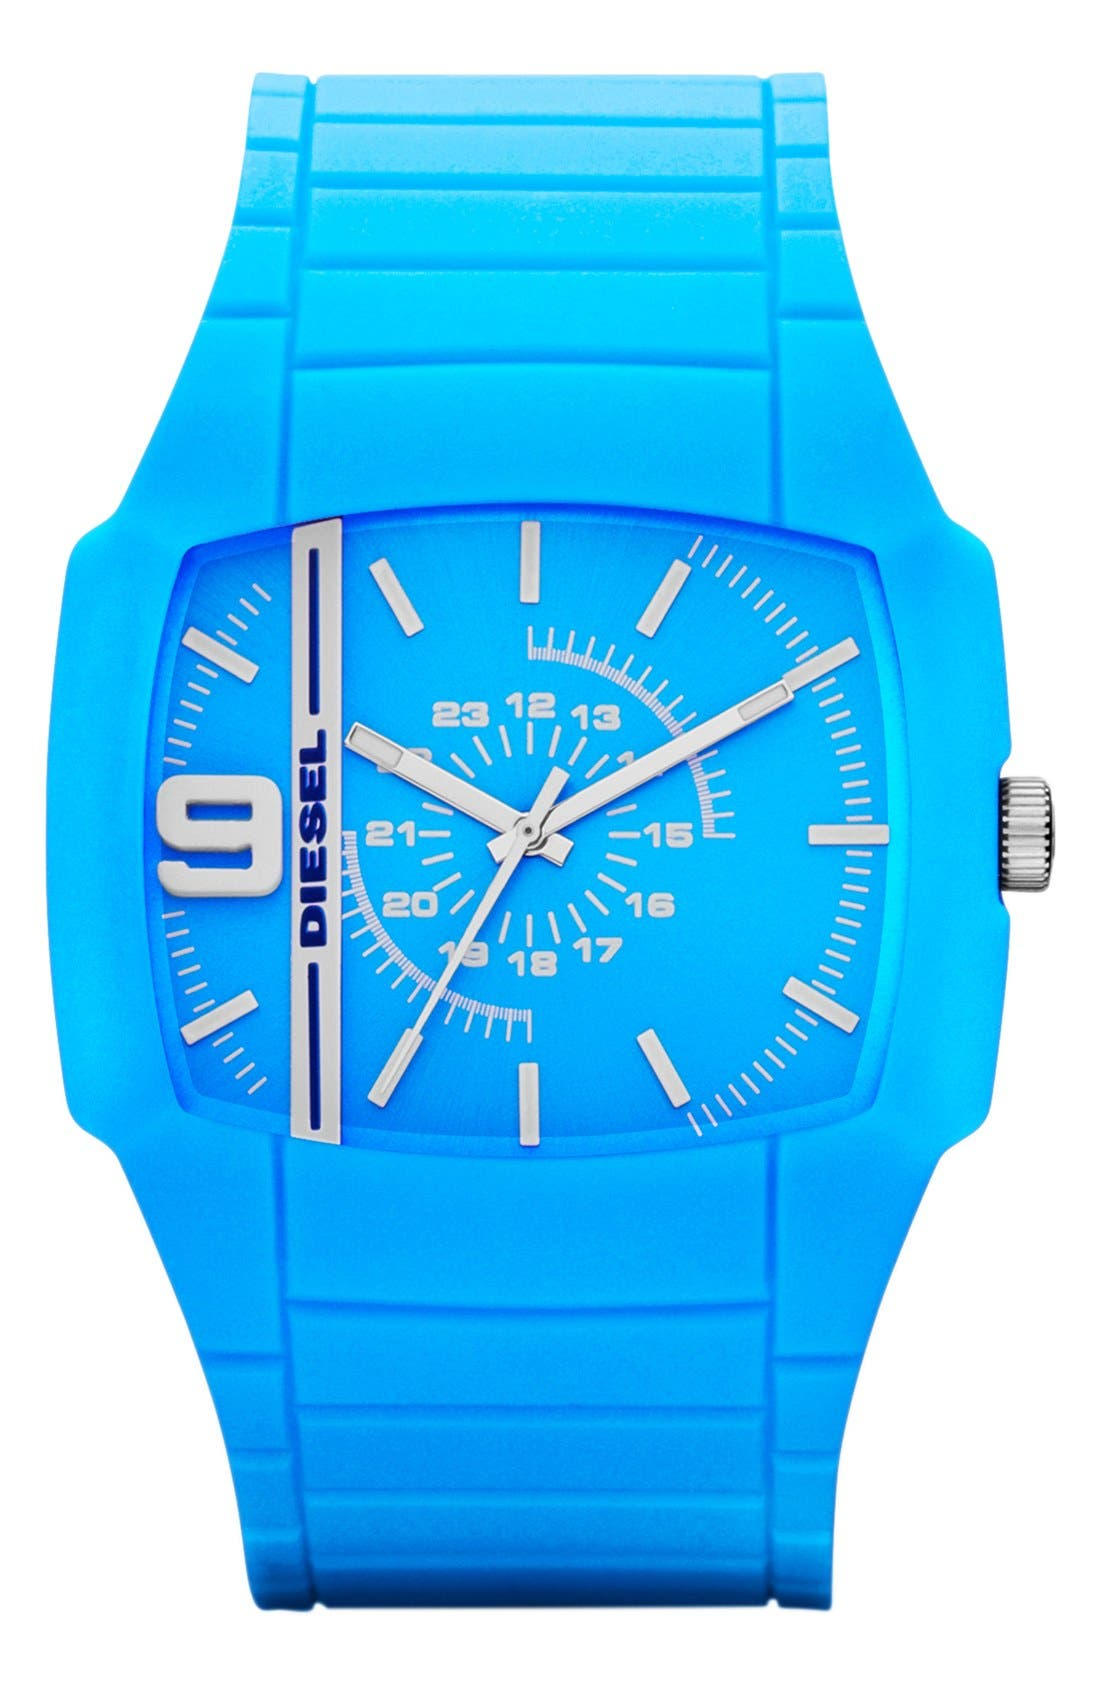 Main Image - DIESEL® 'Trojan' Silicone Strap Watch, 48mm x 43mm